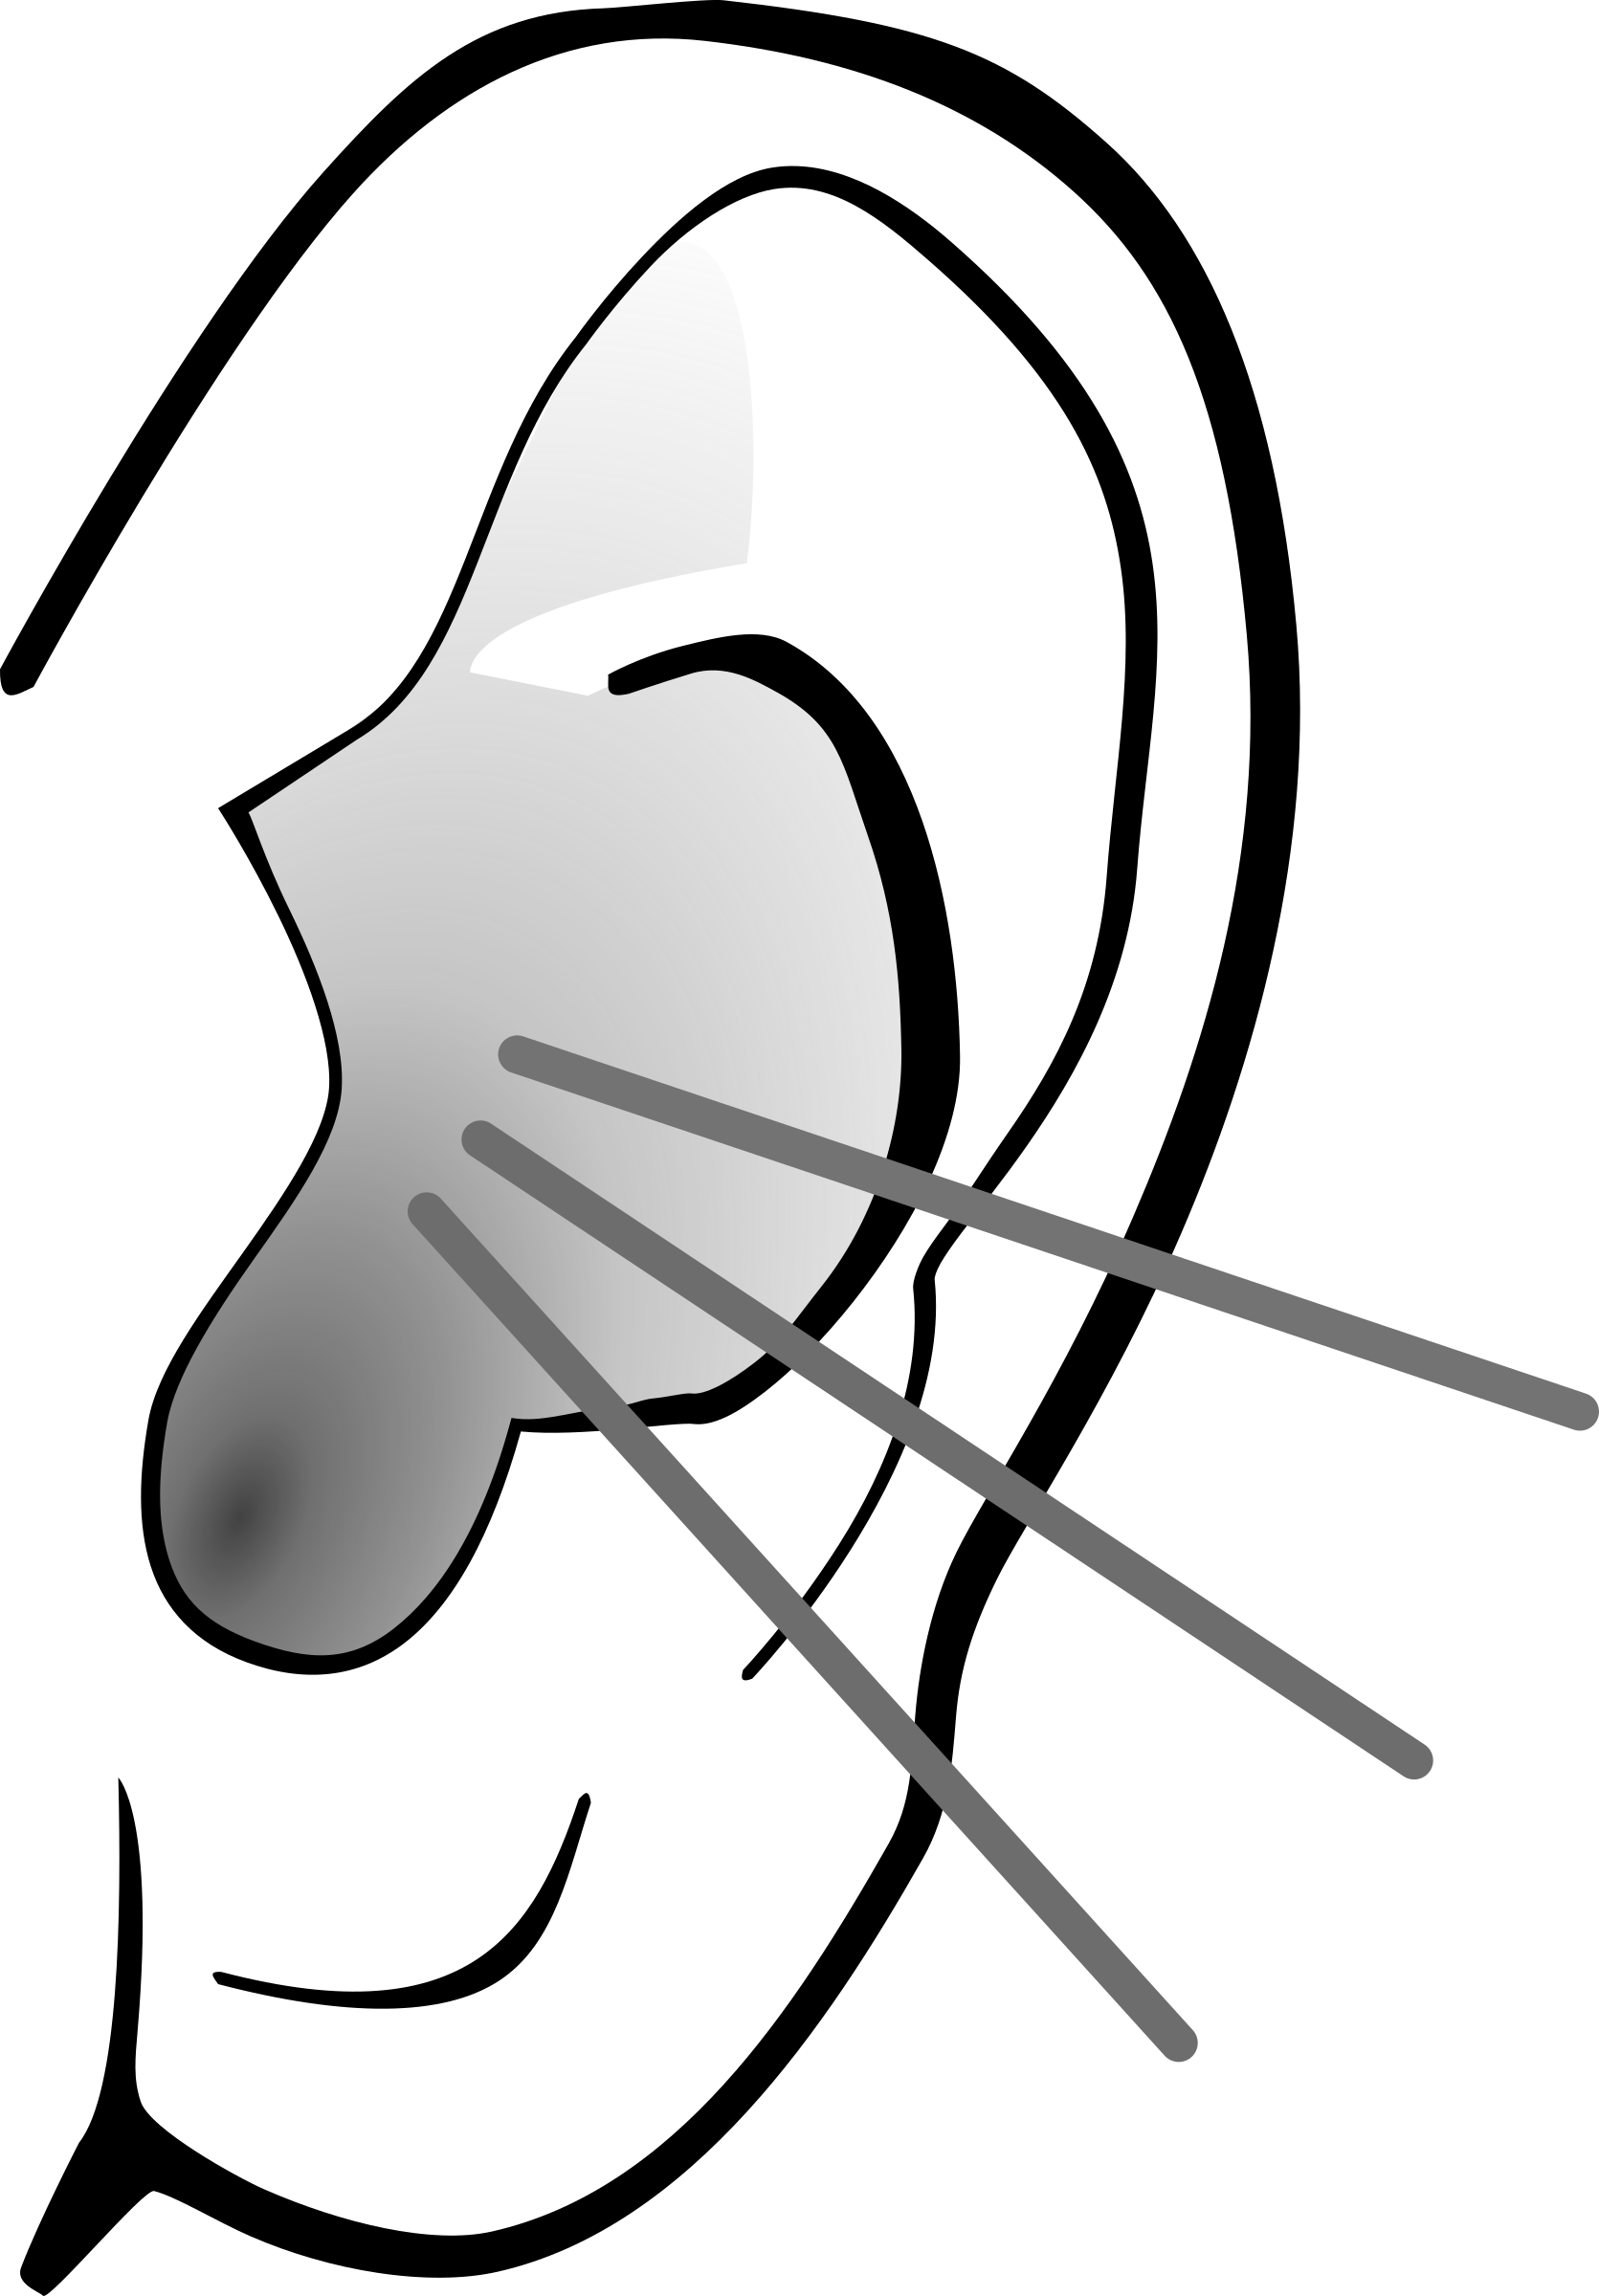 Free Listening Ears Cliparts, Download Free Clip Art, Free Clip Art.